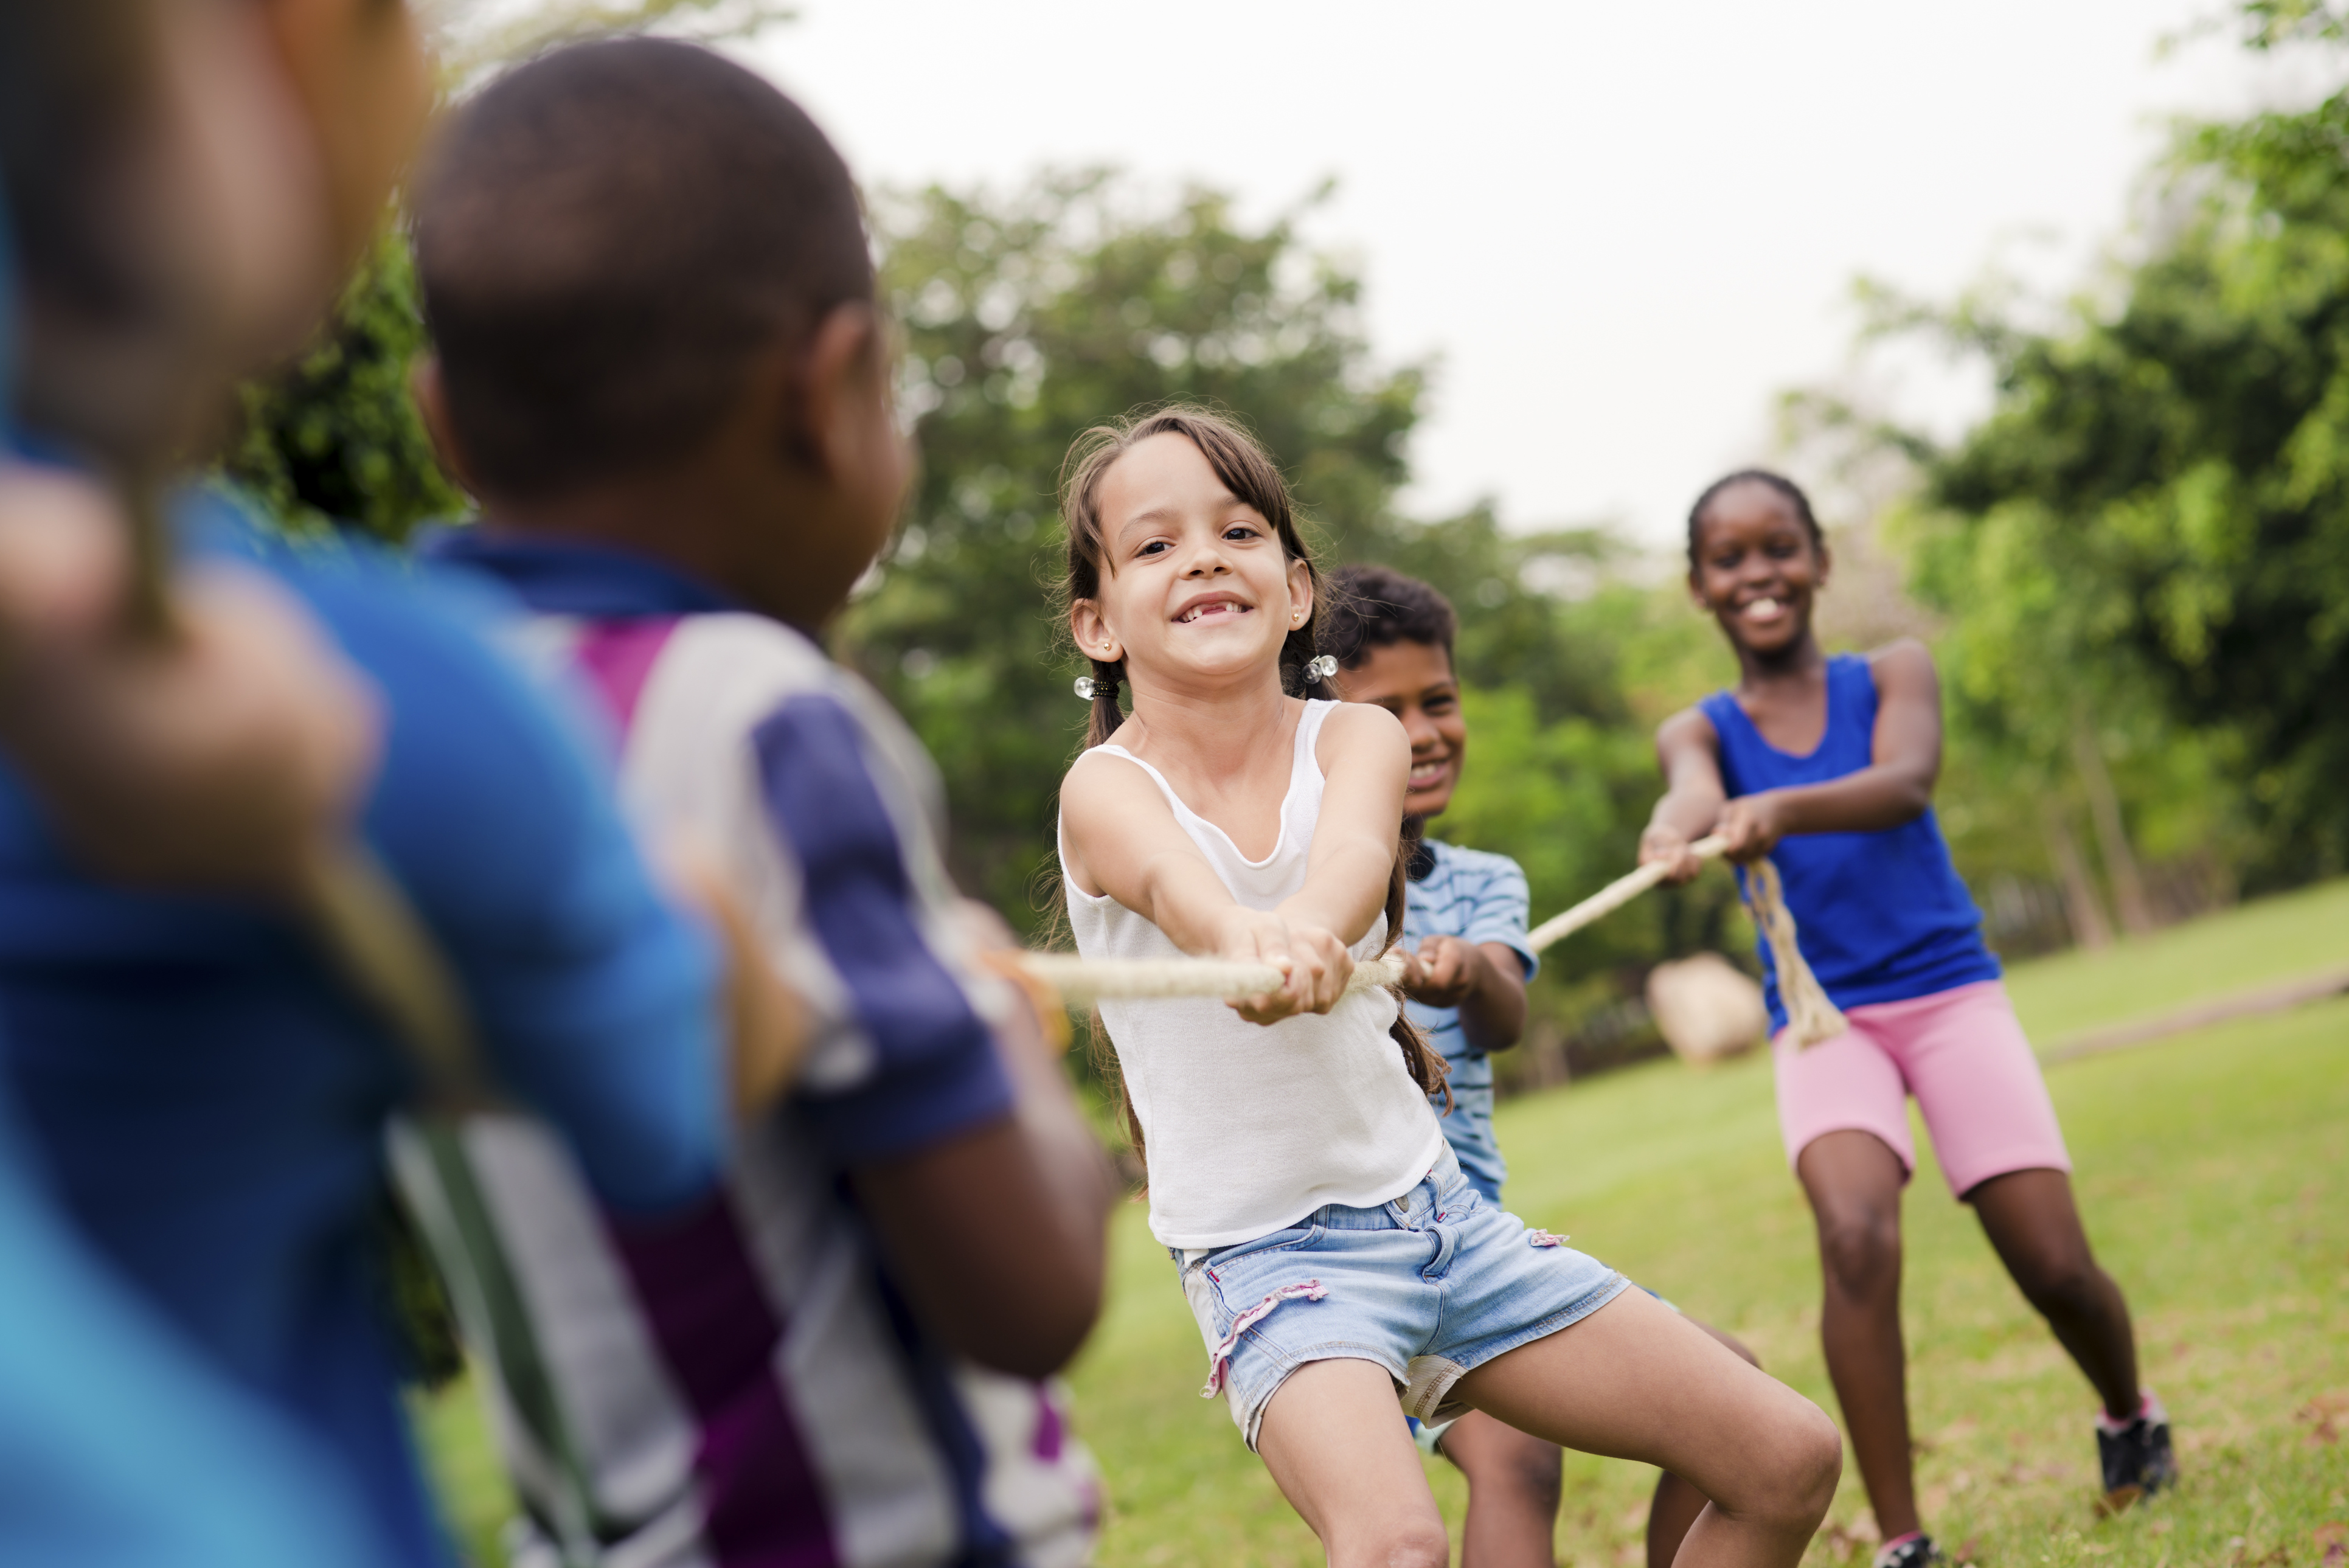 Summer camp 101: Catapult into camp season with tips from parenting expert